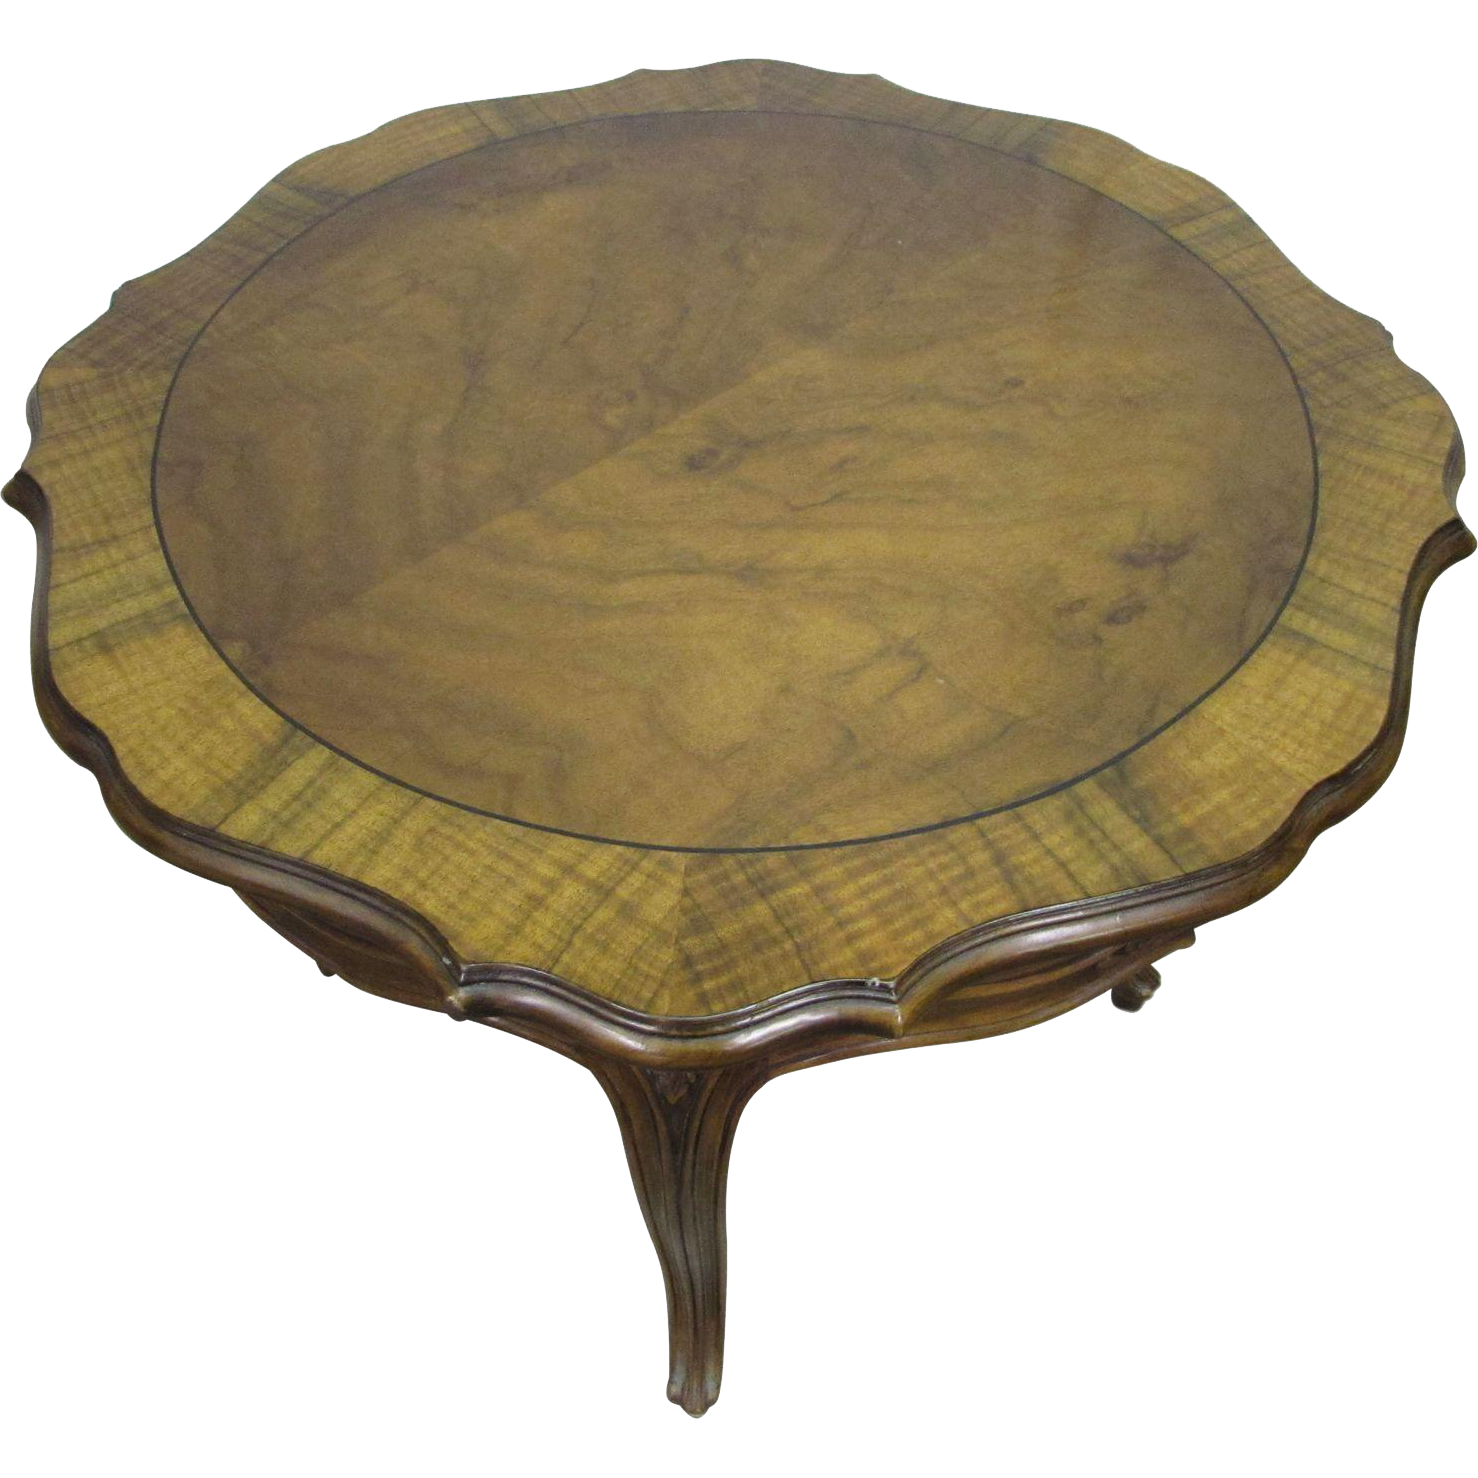 Early 20th century carved wooden table